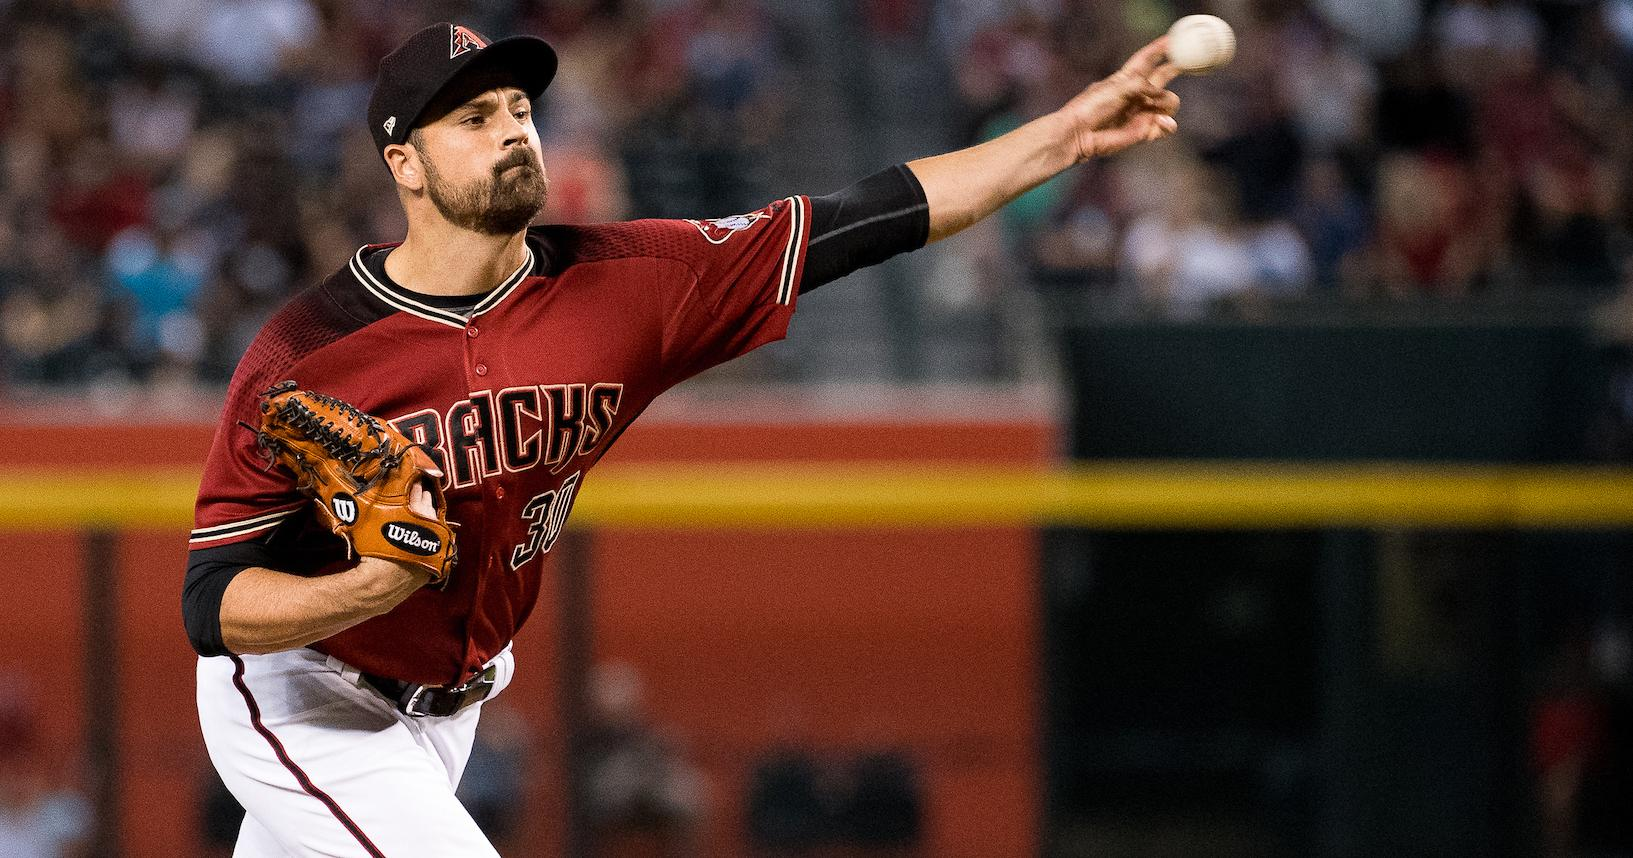 D-backs sign T.J. McFarland to 1-year contract